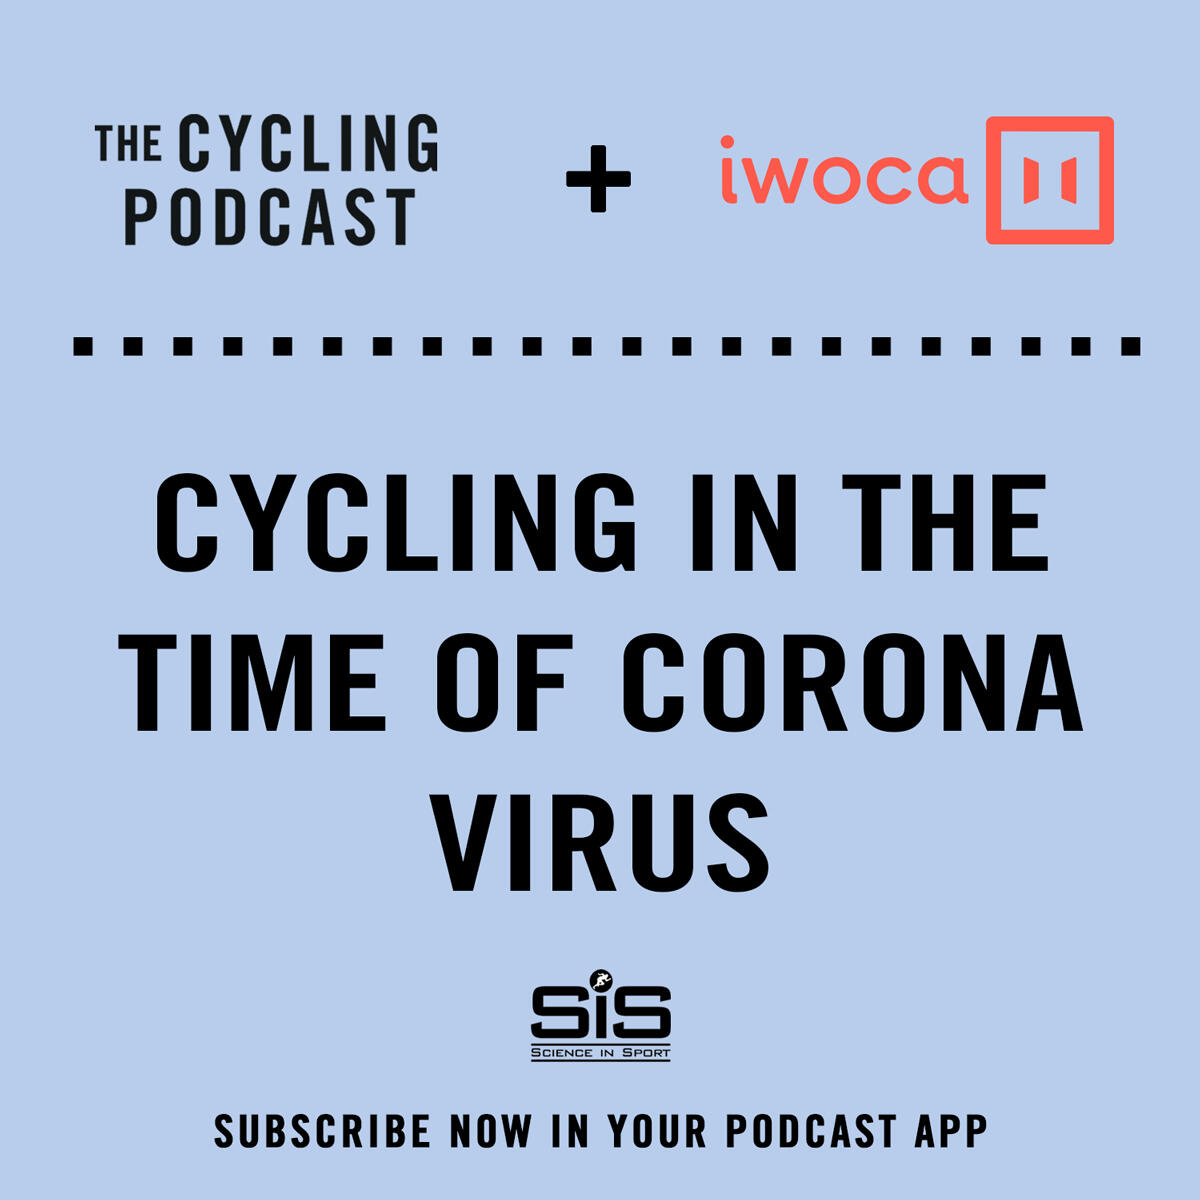 24: Cycling in the time of coronavirus